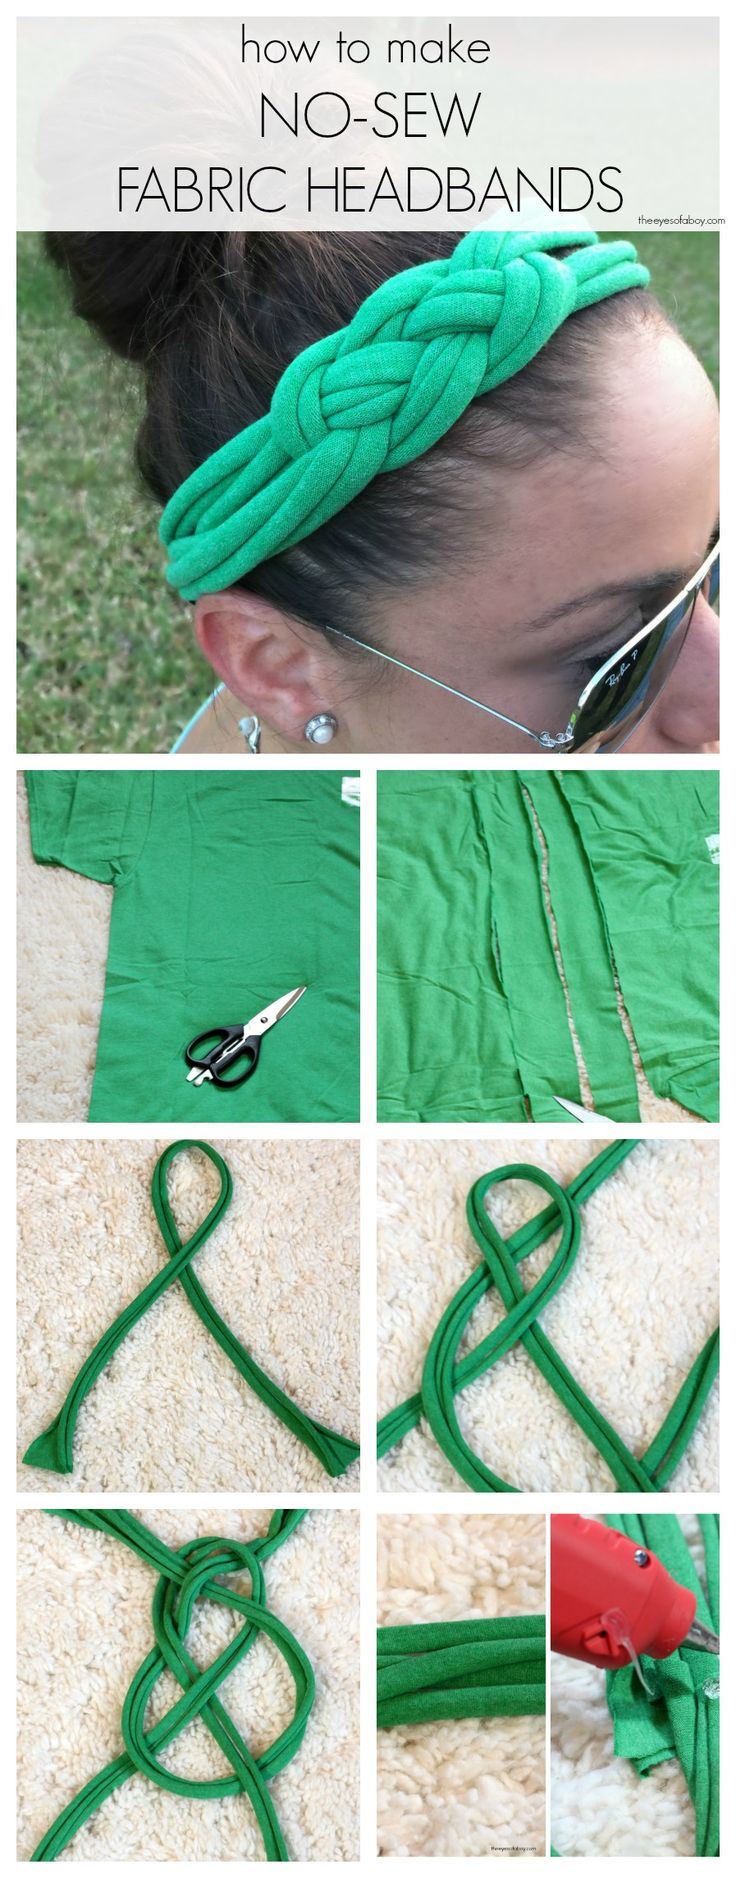 How to Make No Sew Fabric Headbands with Celtic Knot from T Shirts